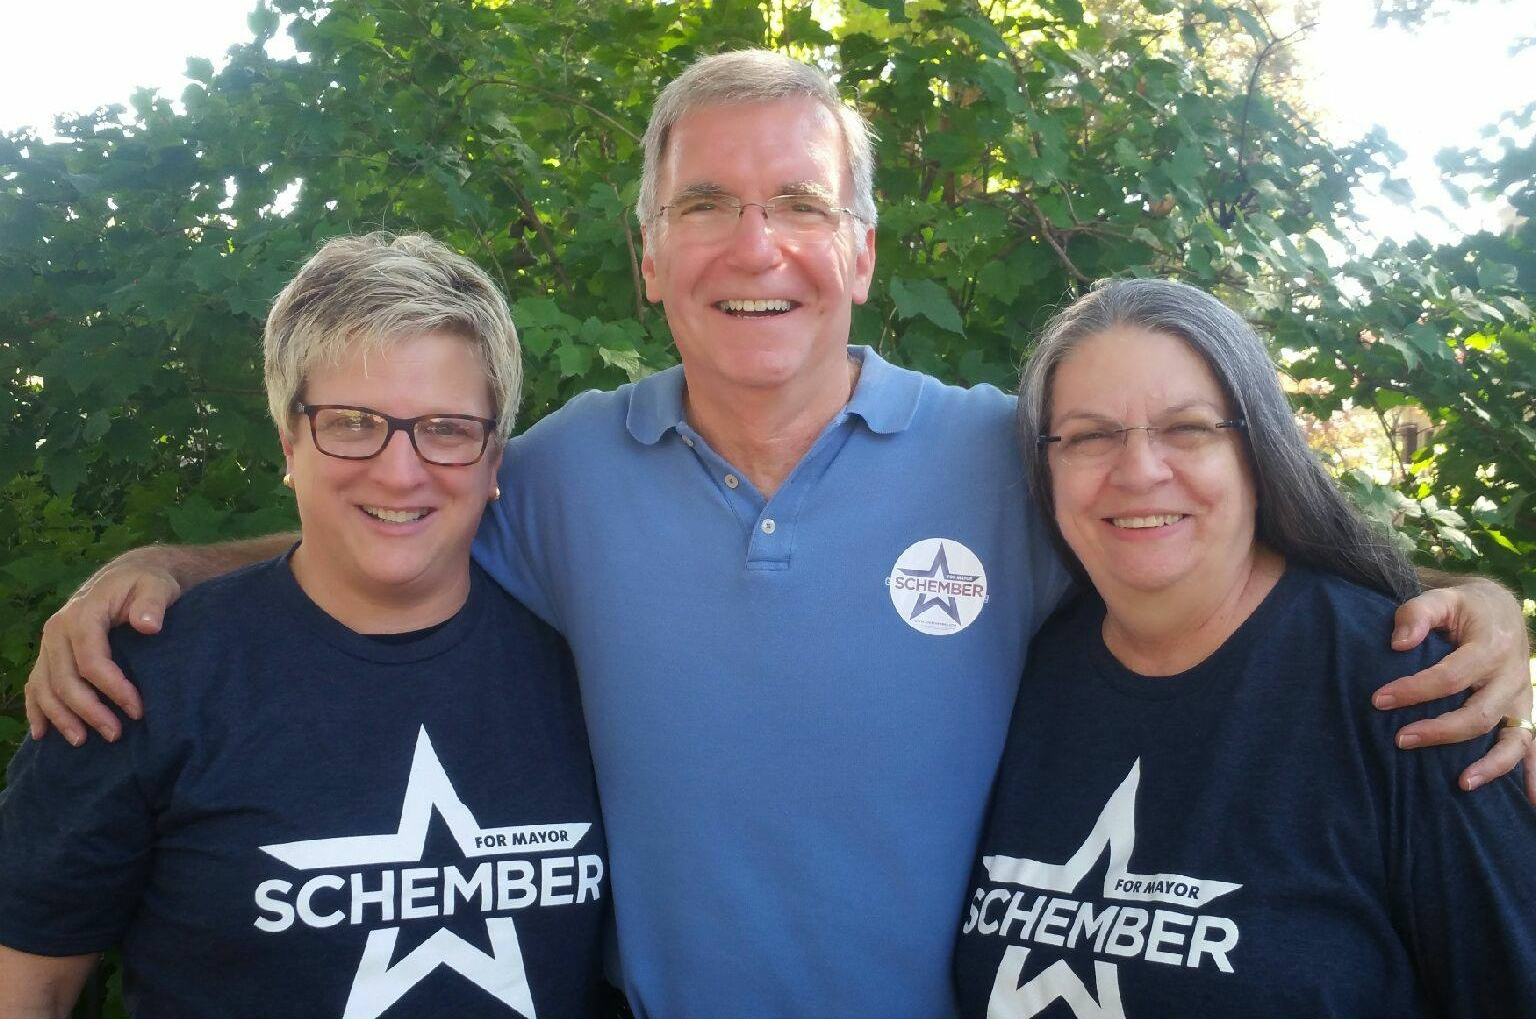 Another great day of door-to-door, thanks to help from Almi Clerkin & Rhonda.